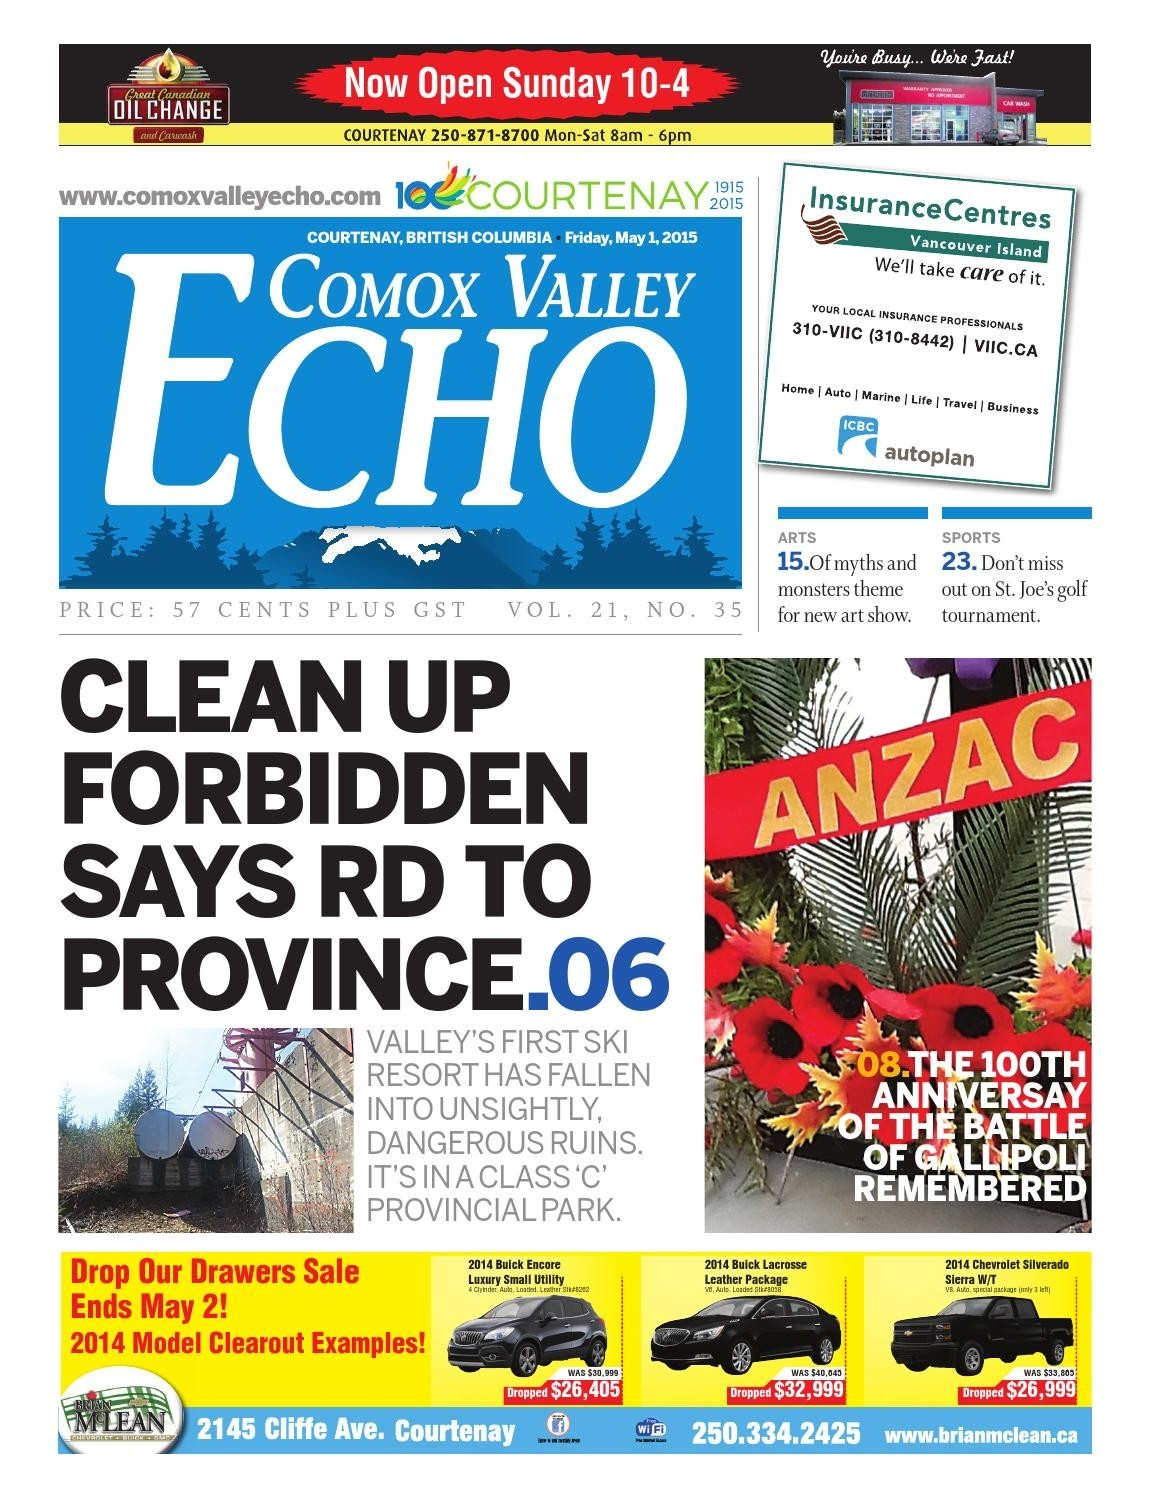 Comox Valley Echo - May 1, 2015Comox Valley Echo - Issuu  Julan Code 2021